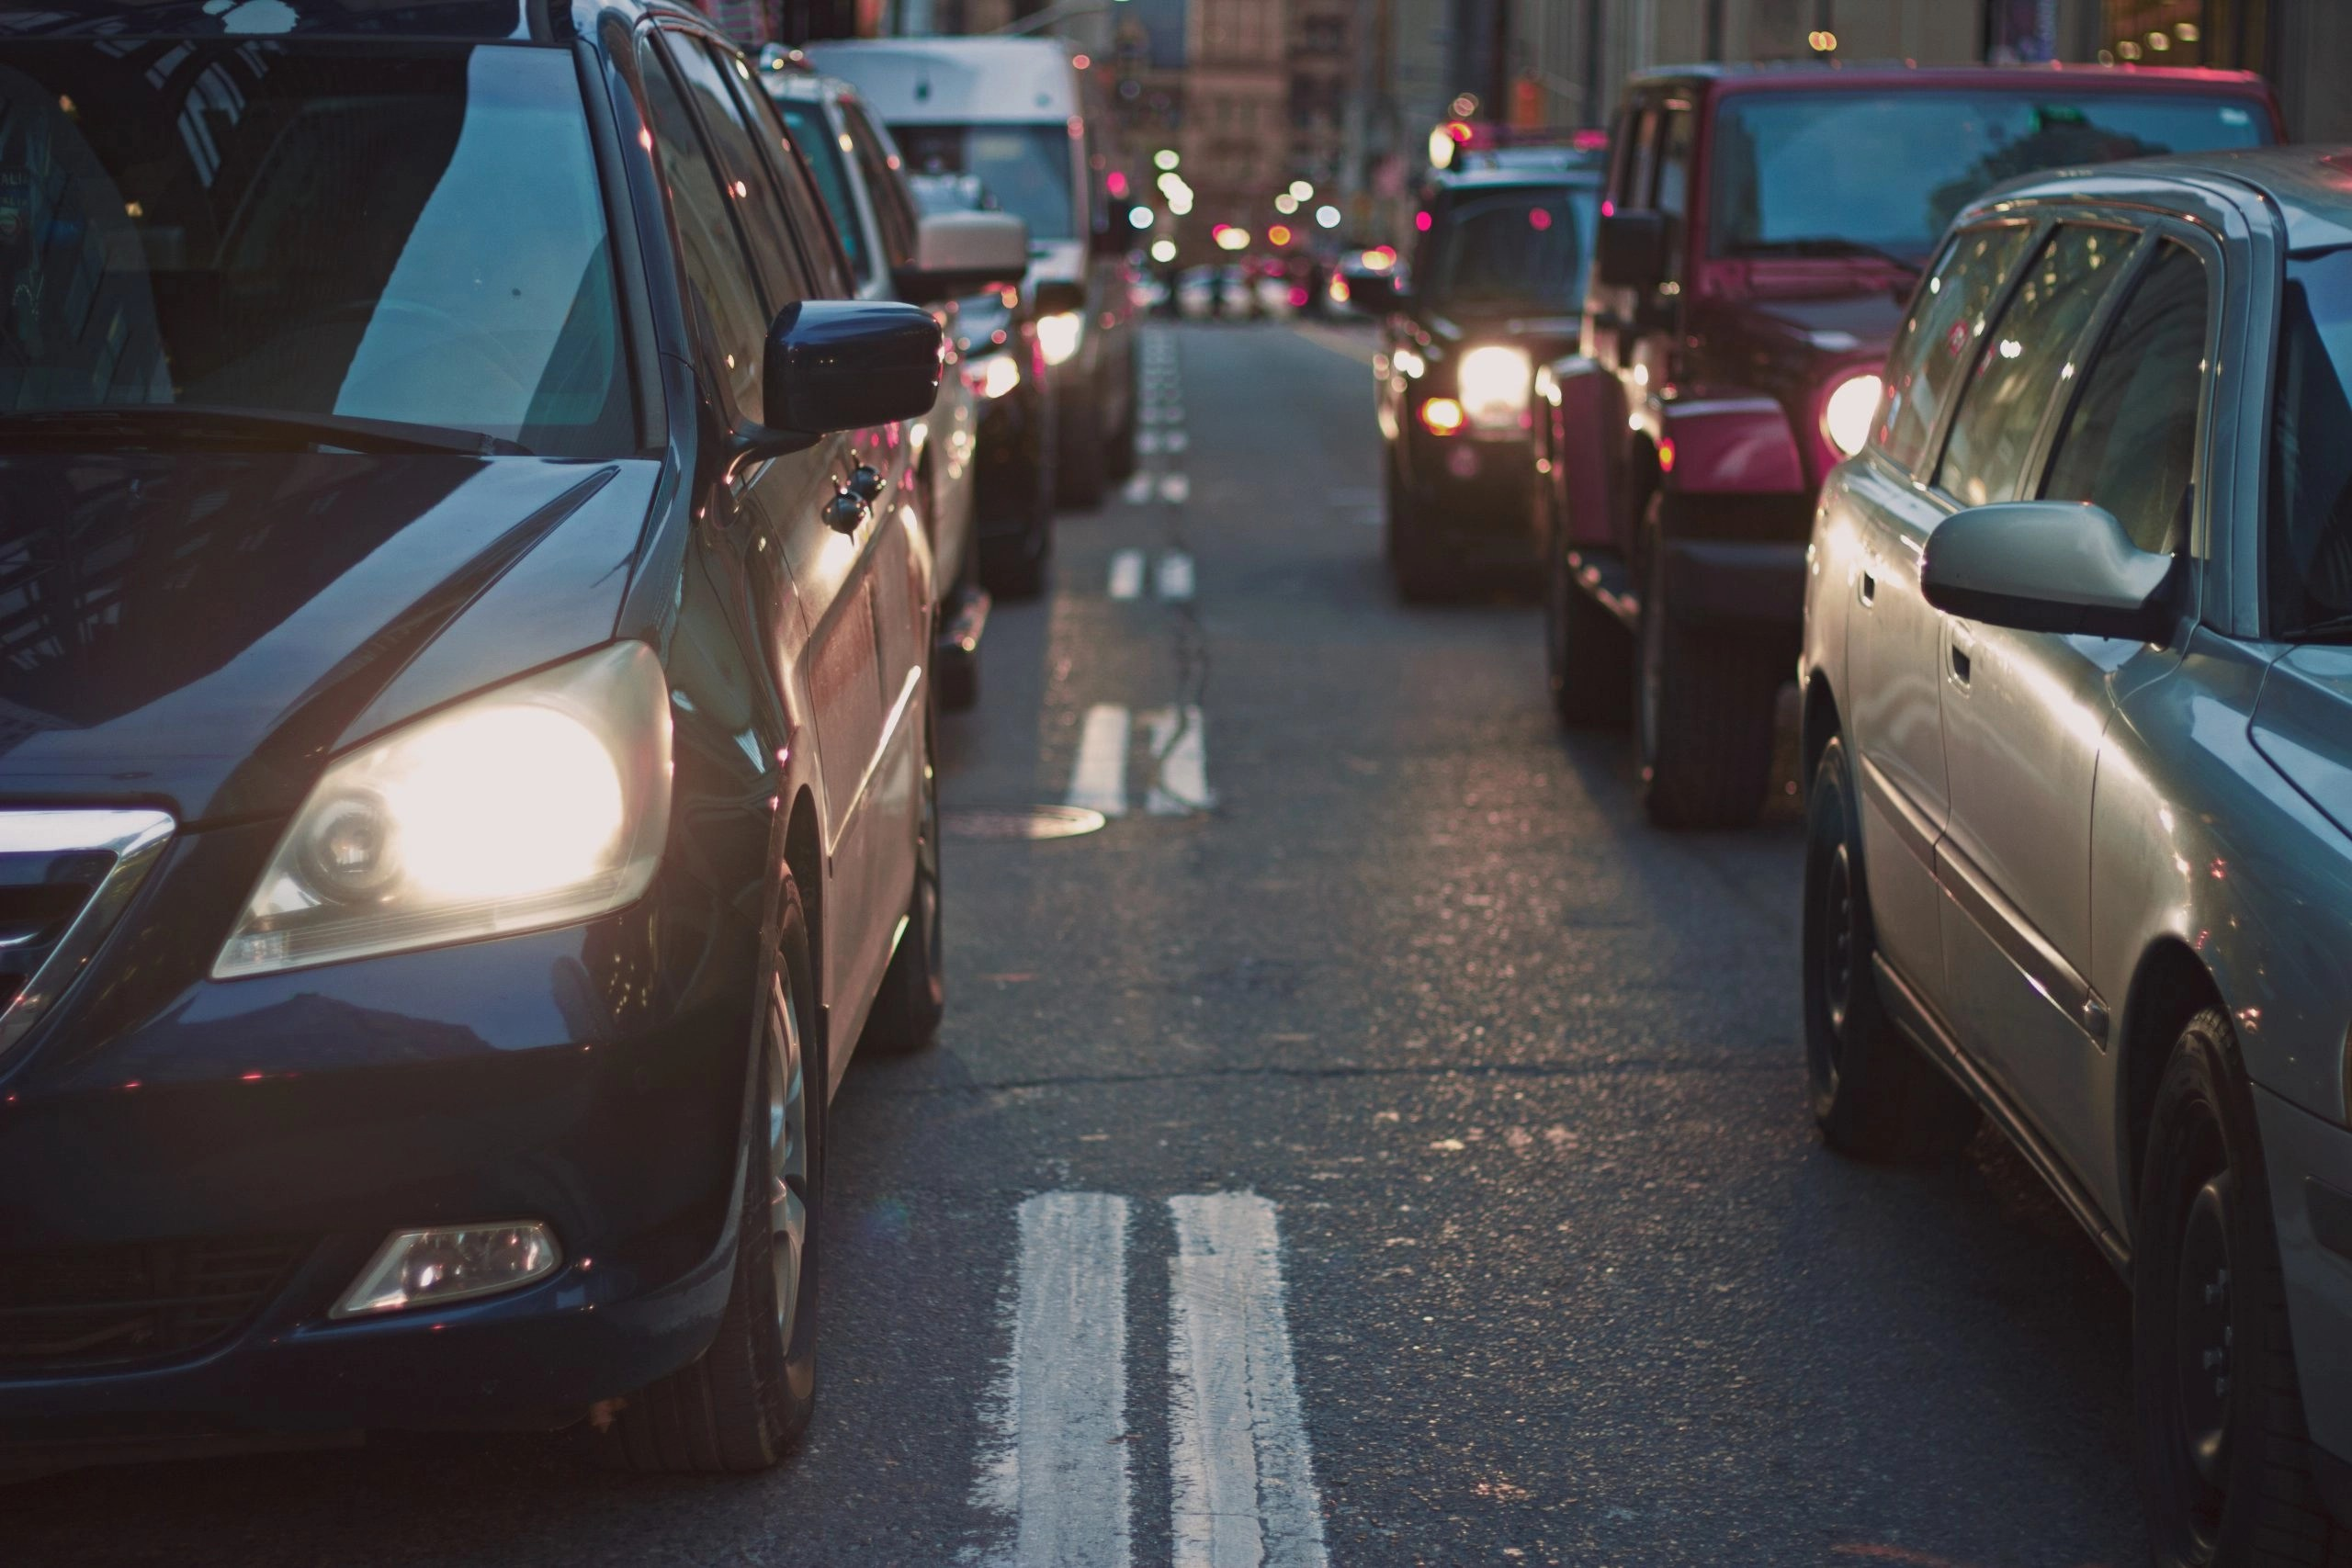 New Study Reviews the Effects of Cannabis Retail Outlets on Traffic Collisions, Fatalities and Other Traffic-Related Outcomes